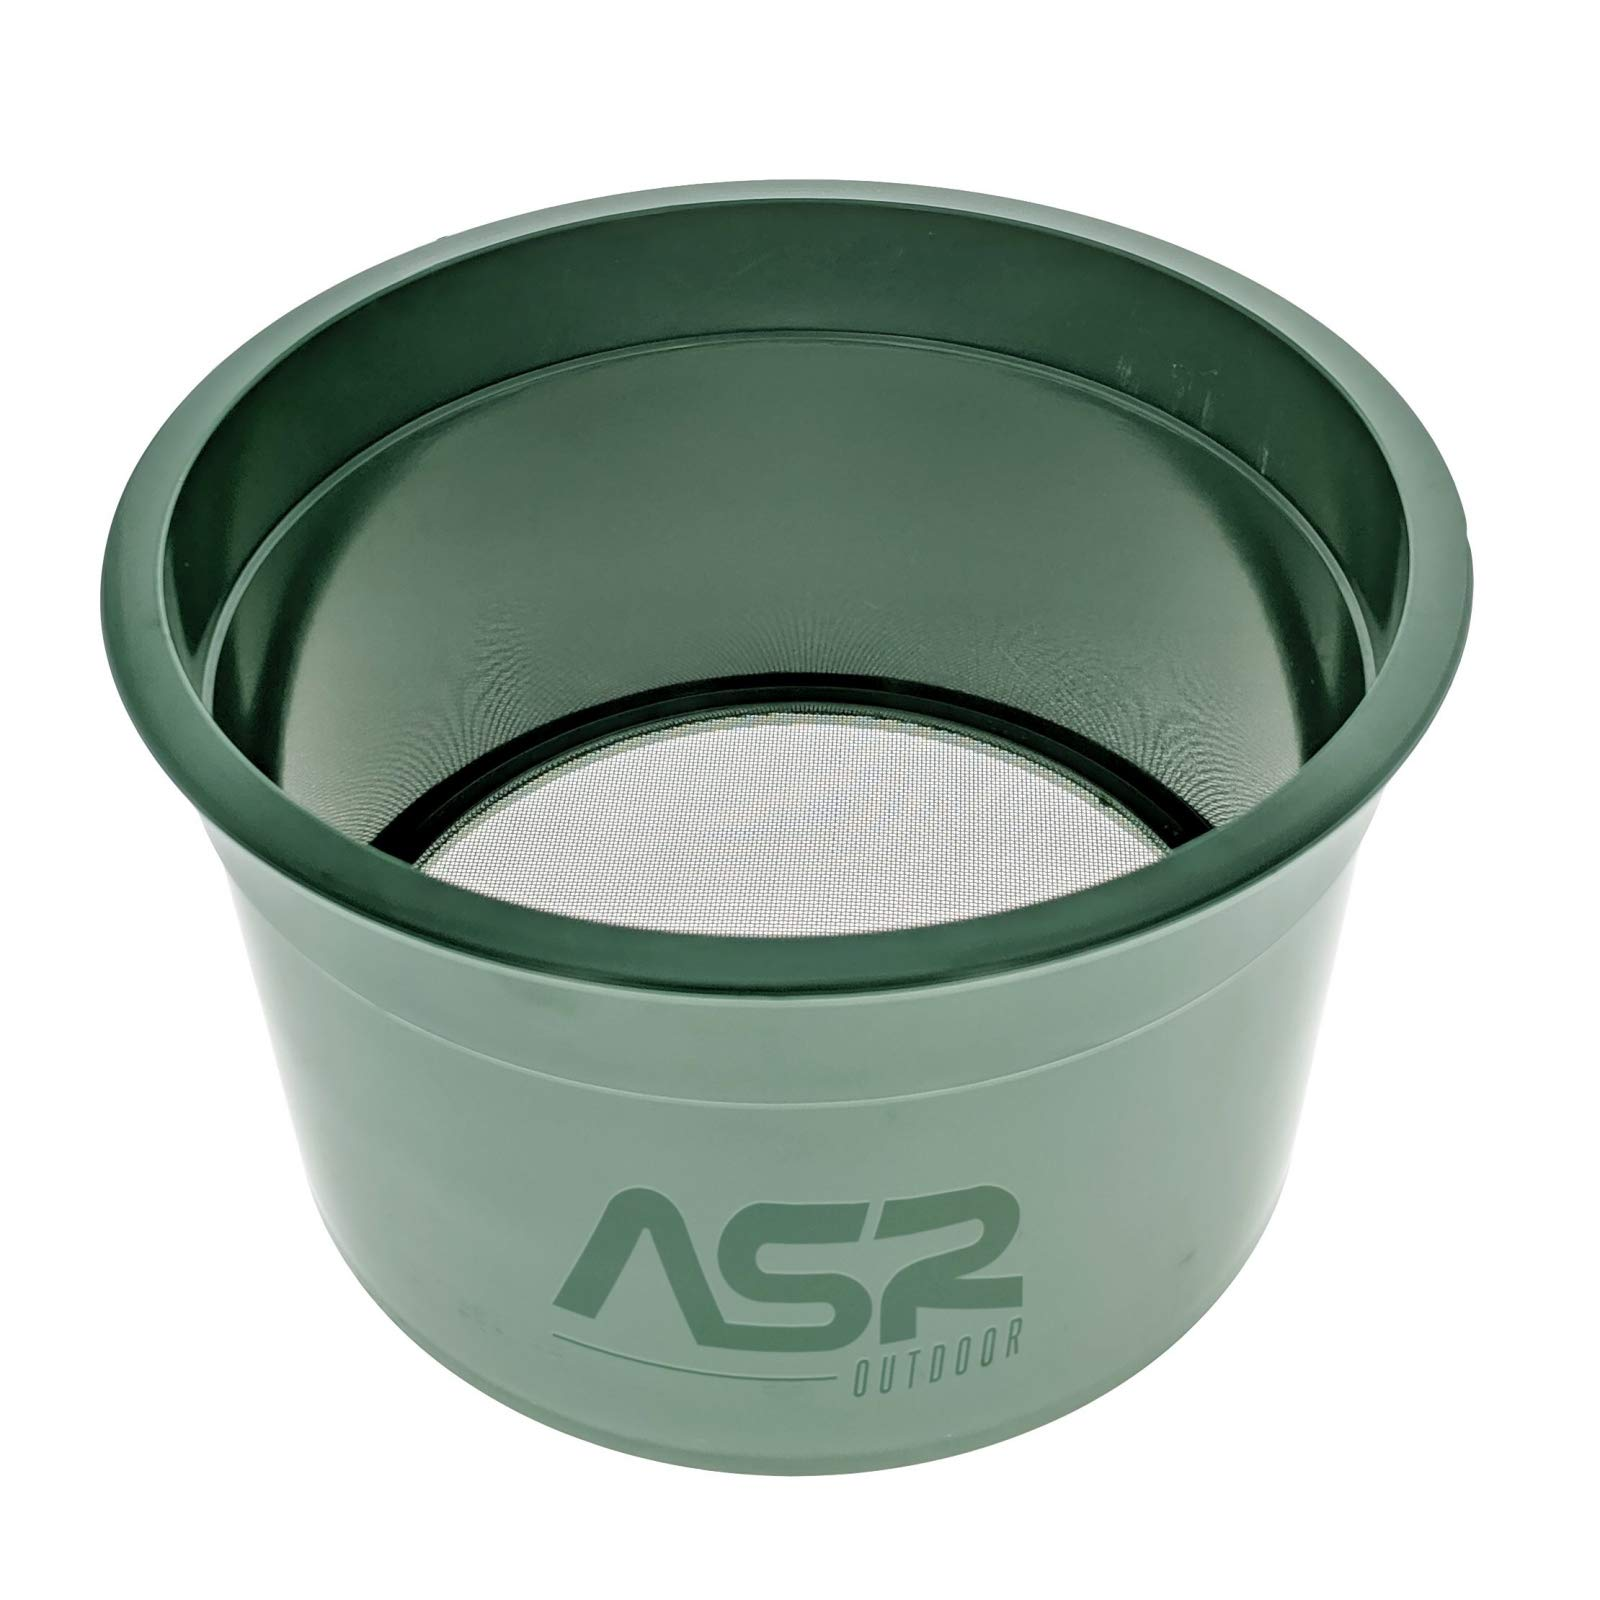 ASR Outdoor Gold Rush Sifting Classifier Sieve Mini 6 Inch Prospect Pan 50 Holes Per Sq Inch by ASR Outdoor